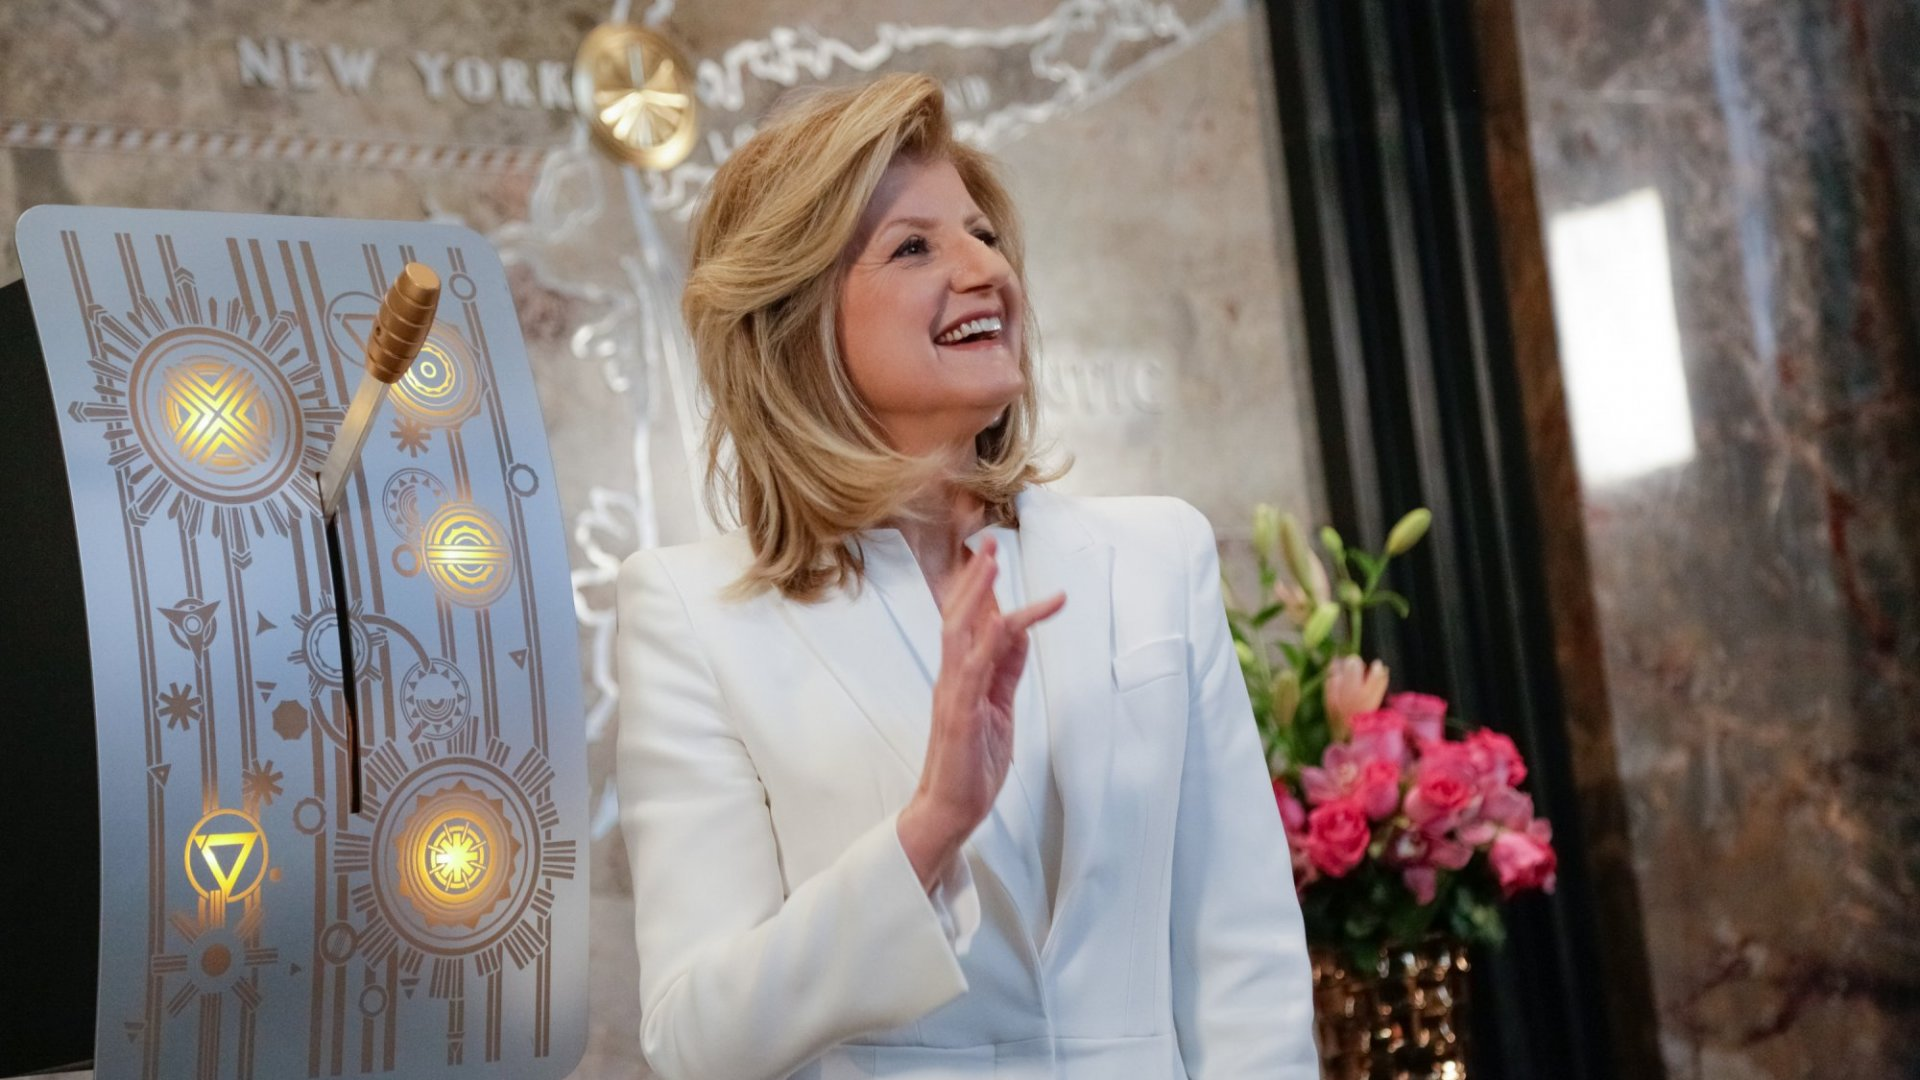 Arianna Huffington's New Product Just Might Cure Your Smartphone Addiction